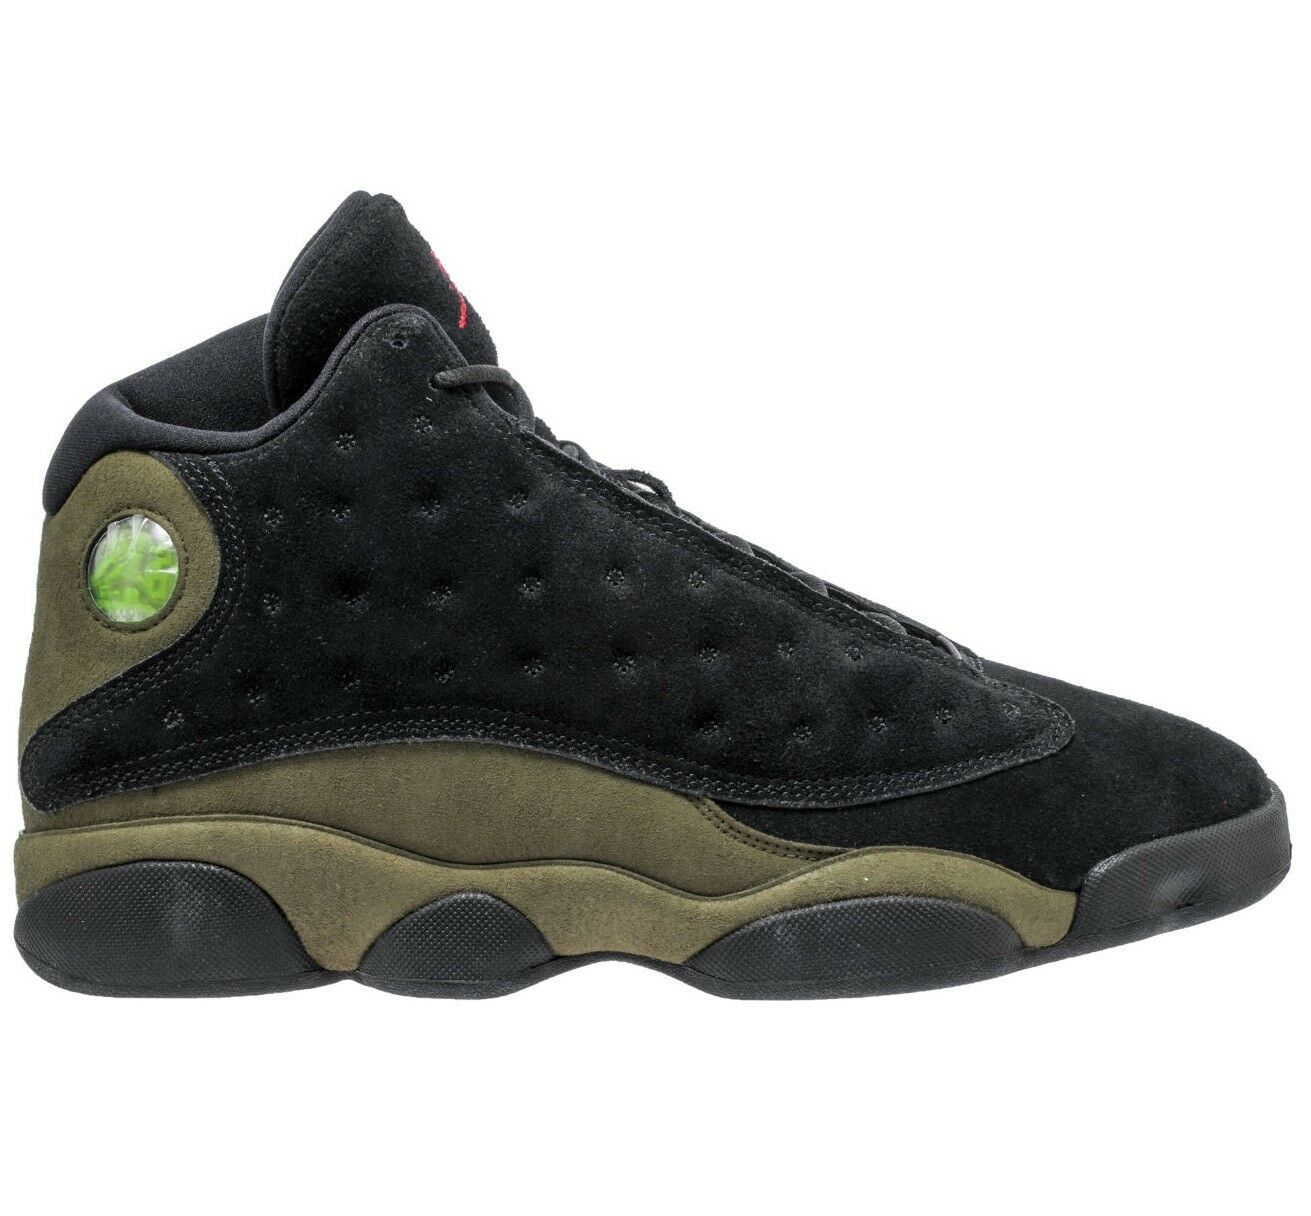 Air Jordan 13 XIII Retro Olive Mens 414571-006 Black Gym Red Shoes Size 8.5